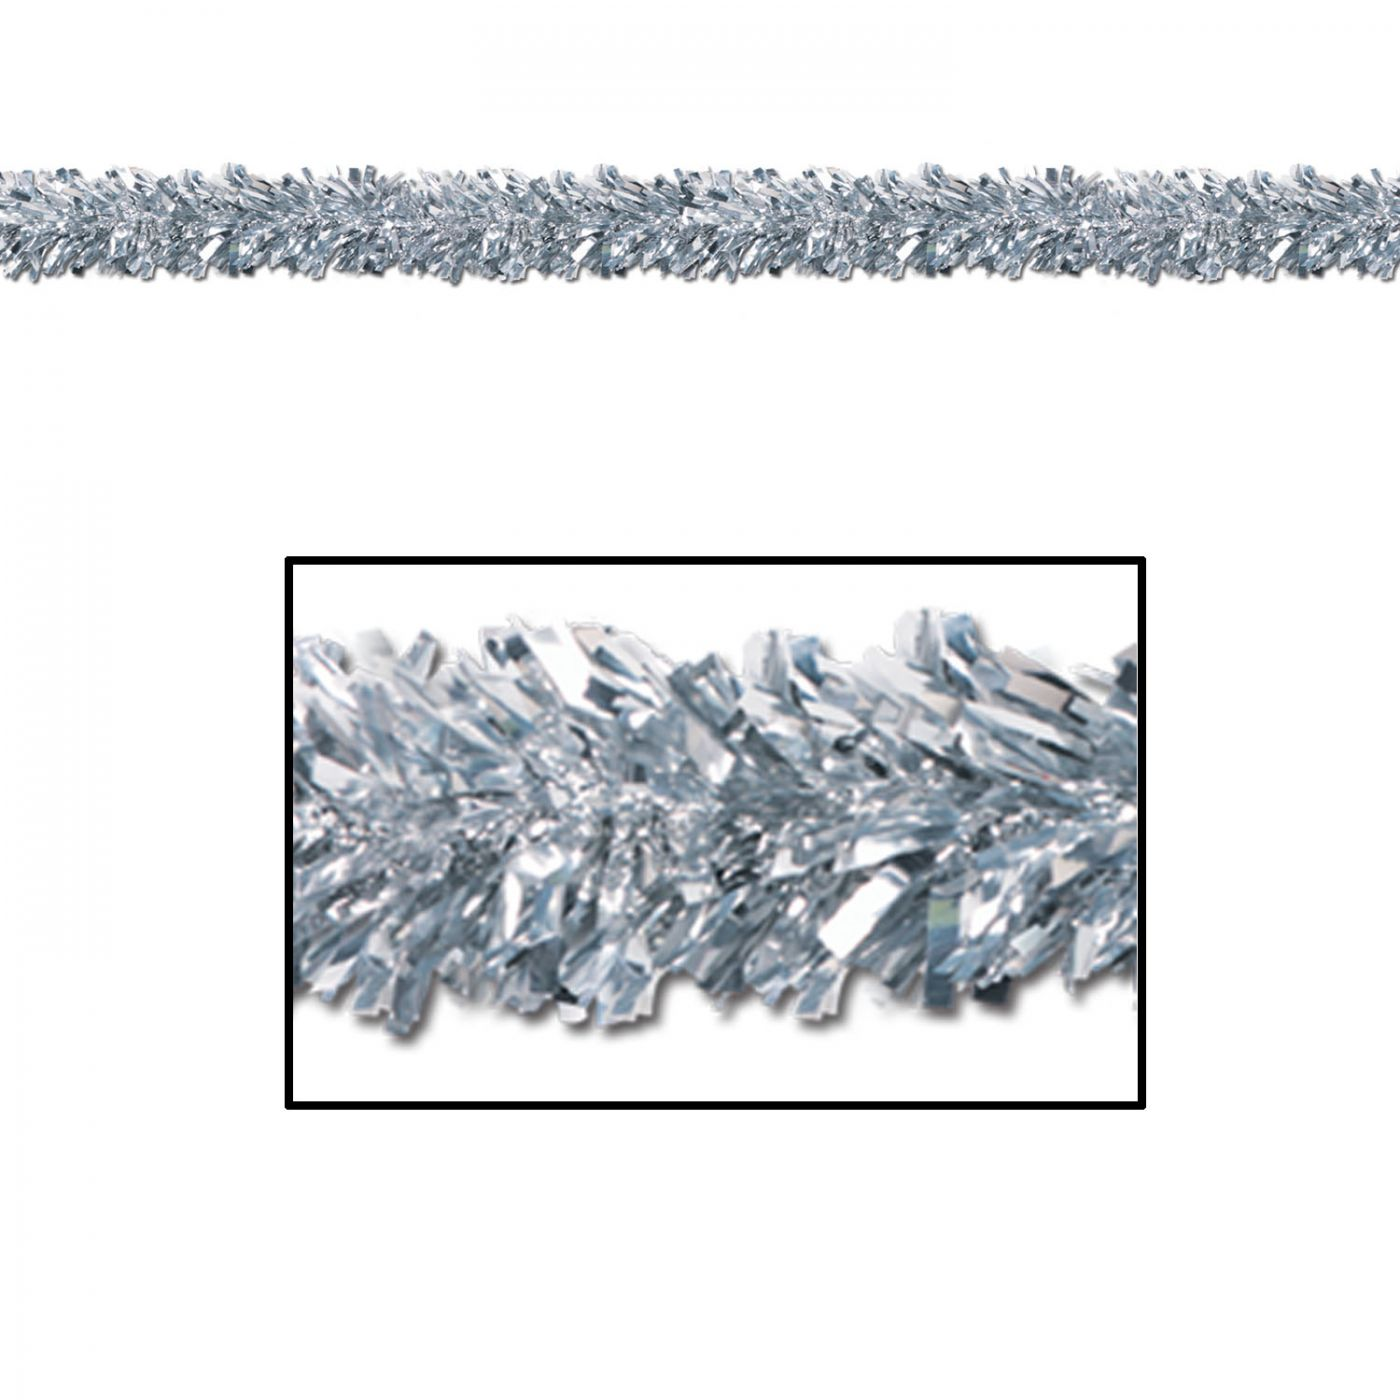 Image of 6-Ply FR Metallic Festooning Garland